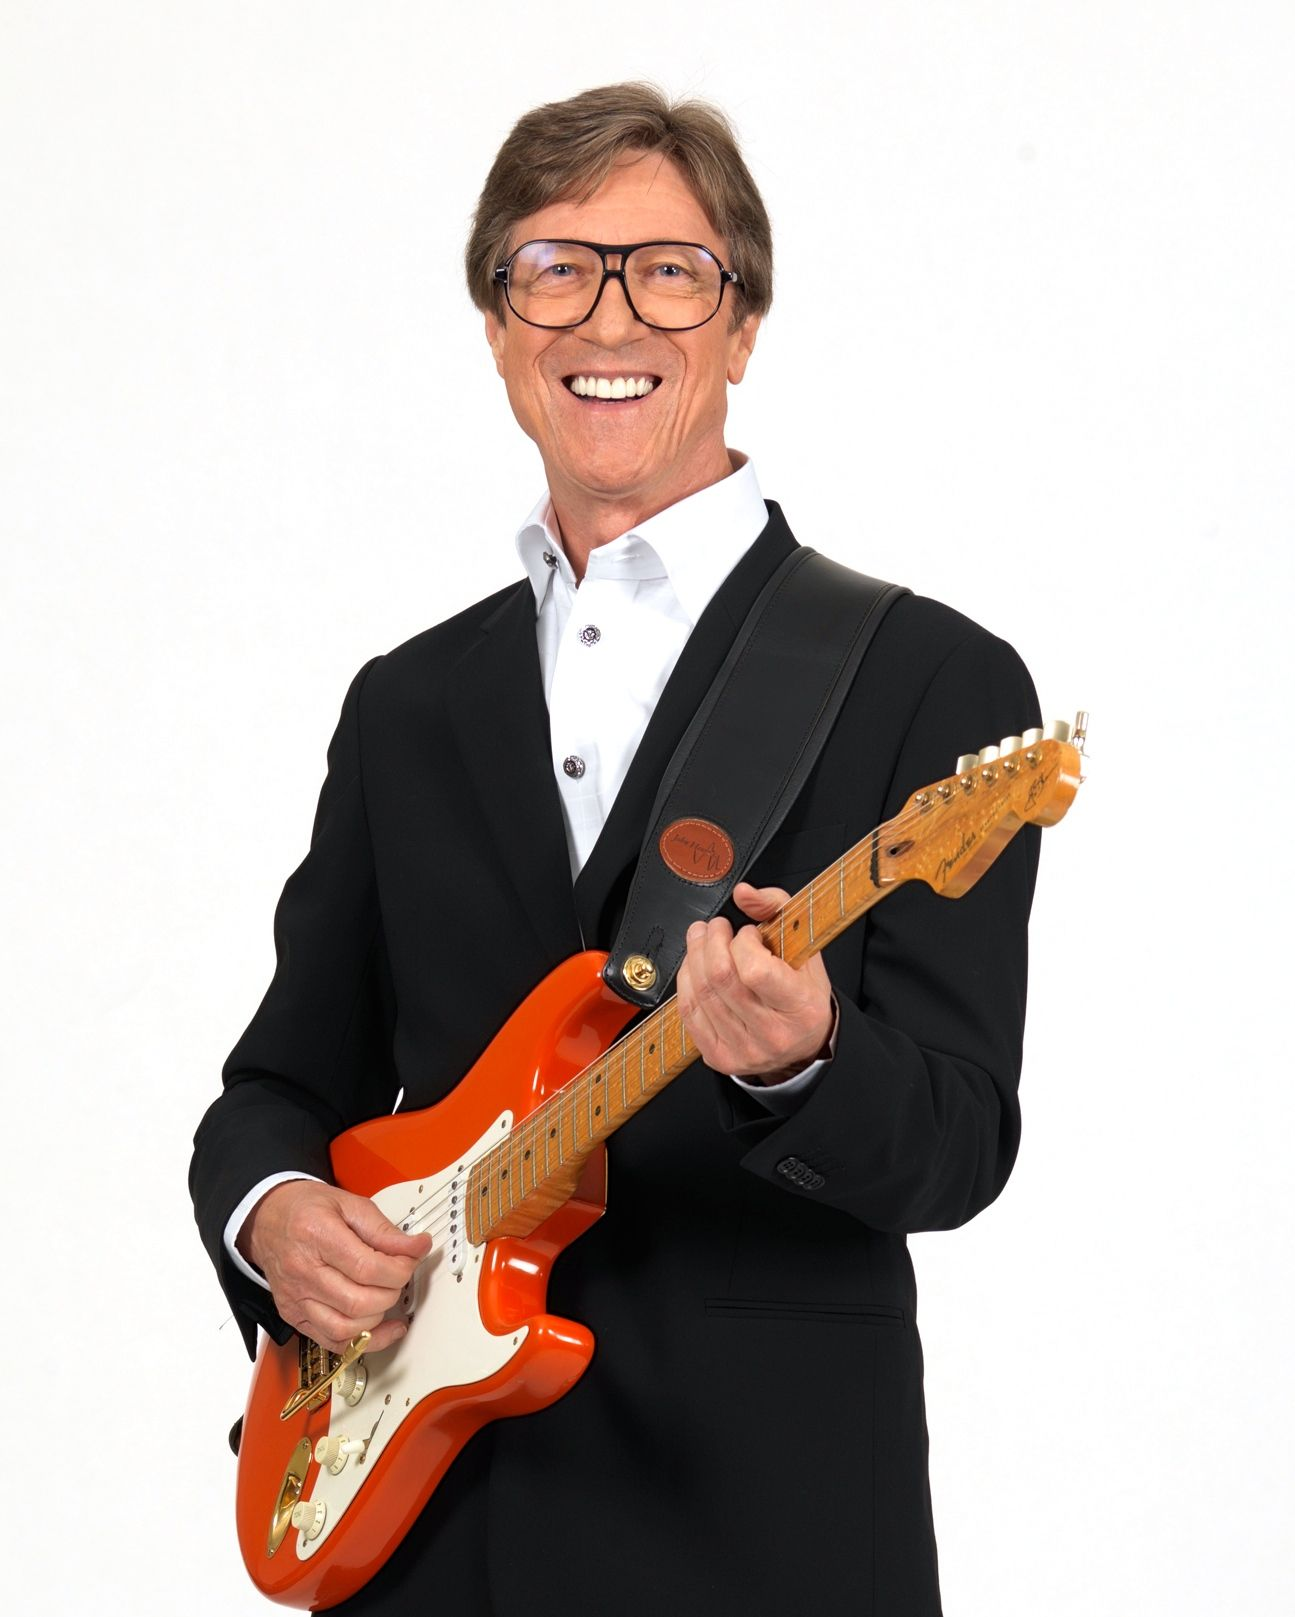 e5d144ed907 Hank Marvin Is The Fender Stratocaster, He did for Fender what Les Paul did  for Gibson. Fender has without doubt sold more guitars through Hank then ...